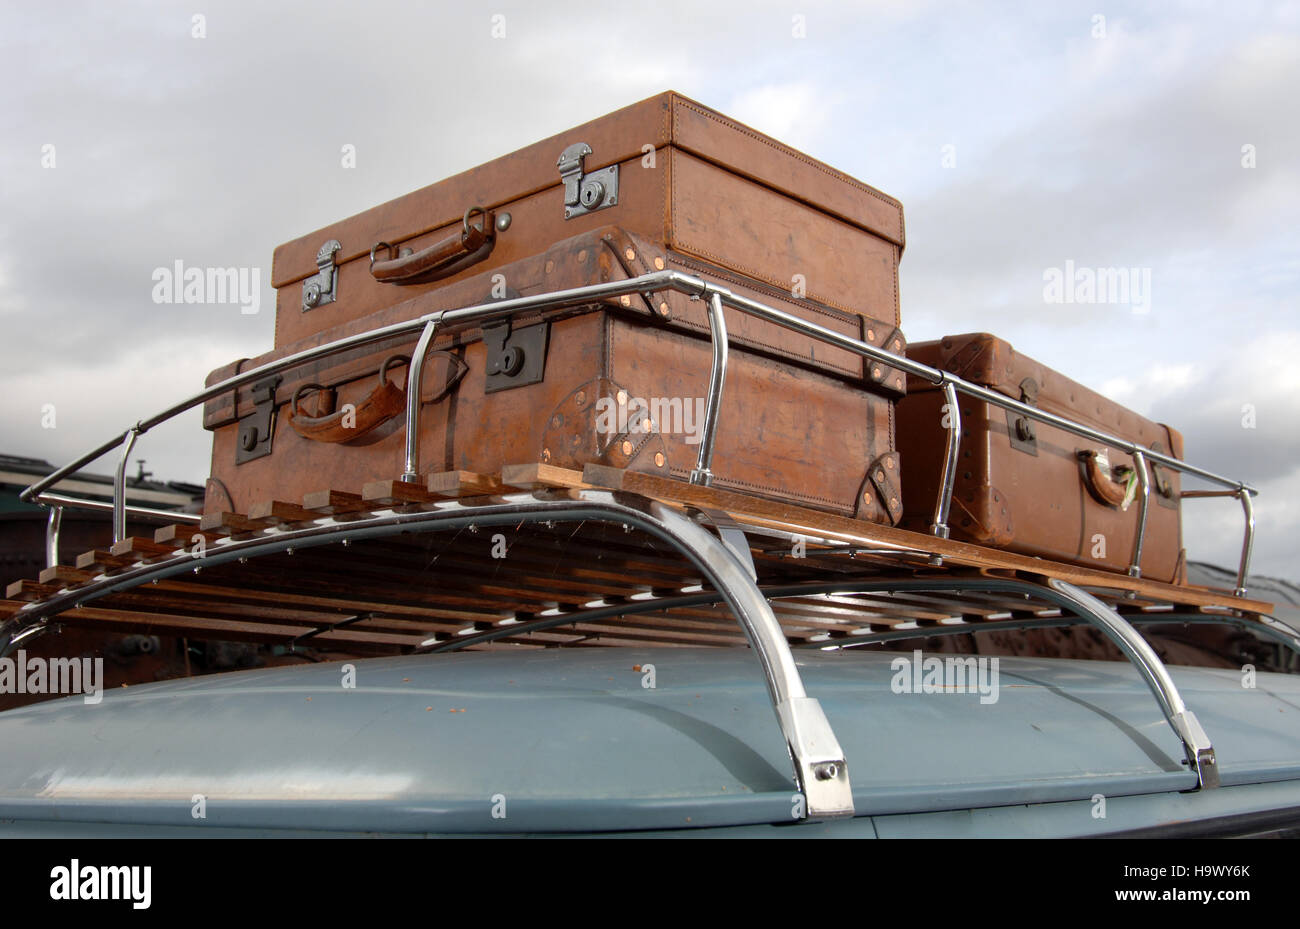 Old Roof Rack Stock Photos & Old Roof Rack Stock Images